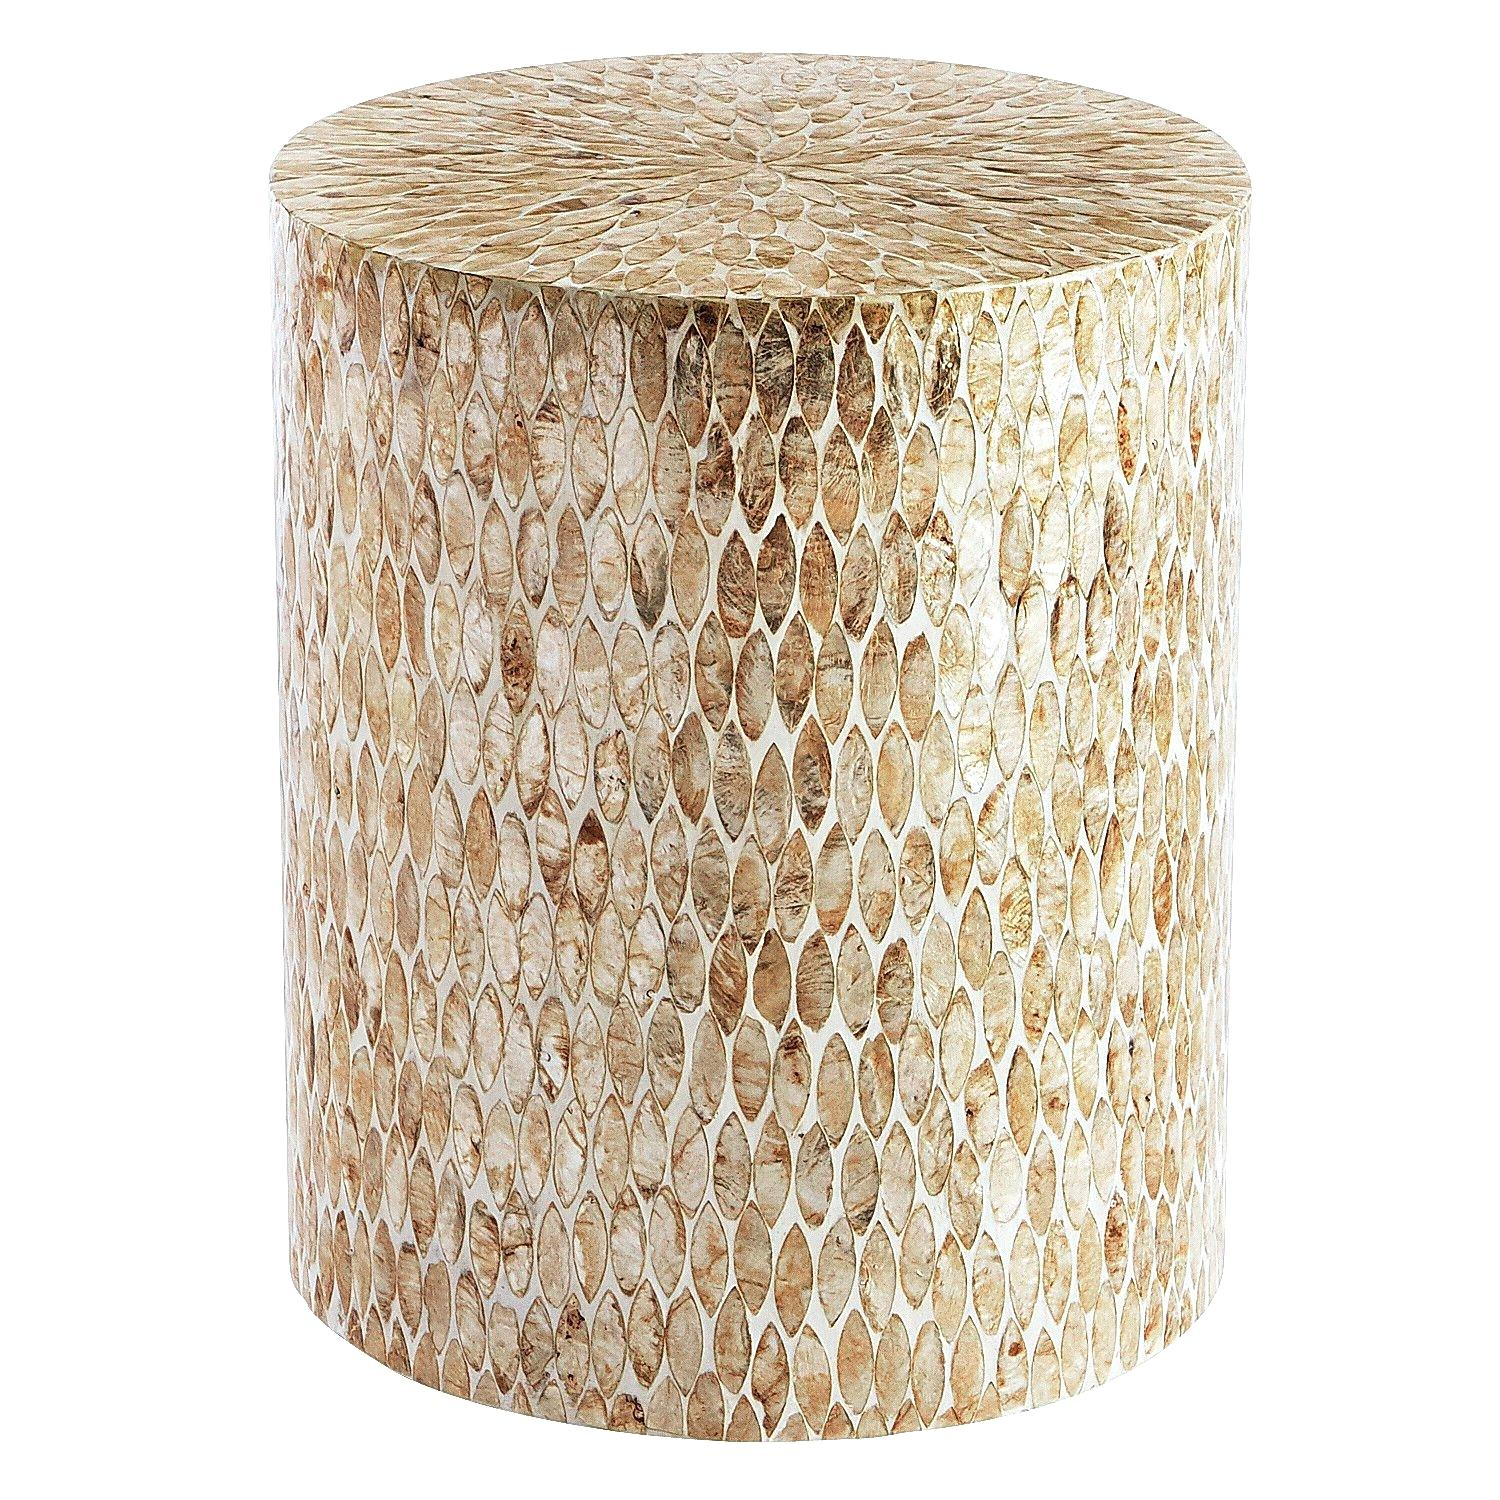 drum accent table manila cylinder brass storage entrance furniture piece couch set reclaimed oak contemporary silver lamps rectangular patio with umbrella hole blanket chest